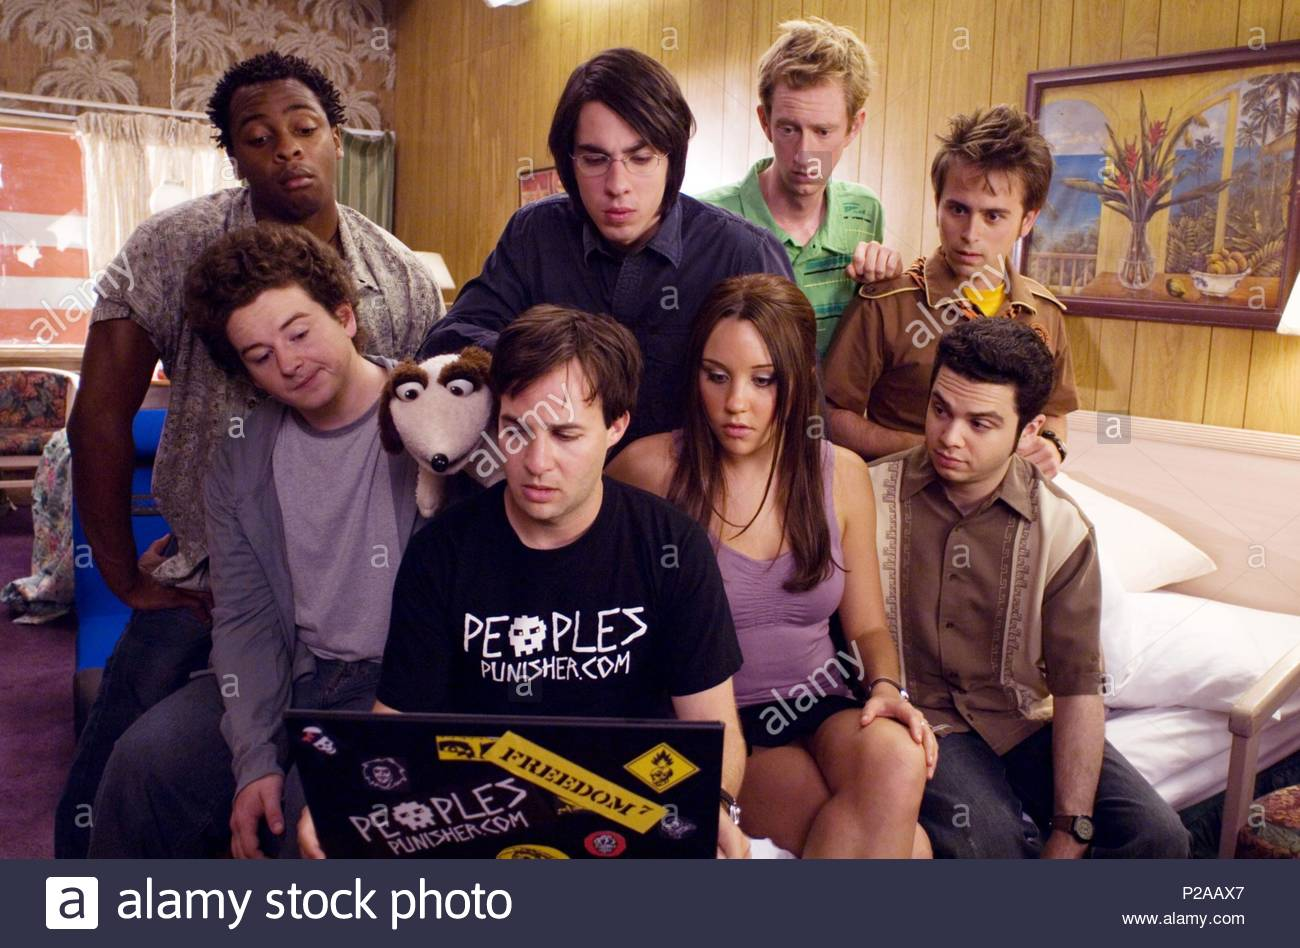 Original Film Title: SYDNEY WHITE.  English Title: SYDNEY WHITE.  Film Director: JOE NUSSBAUM.  Year: 2007.  Stars: AMANDA BYNES; JEFFREY HOWARD; SAMM LEVINE; DONTE BONNER; ADAM HENDERSHOTT; DANNY STRONG; JACK CARPENTER; ARNIE PANTOJA. Copyright: Editorial inside use only. This is a publicly distributed handout. Access rights only, no license of copyright provided. Mandatory authorization to Visual Icon (www.visual-icon.com) is required for the reproduction of this image. Credit: MORGAN CREEK PROD./SW7D PROD./CLIFFORD WERBER PROD. / Album - Stock Image